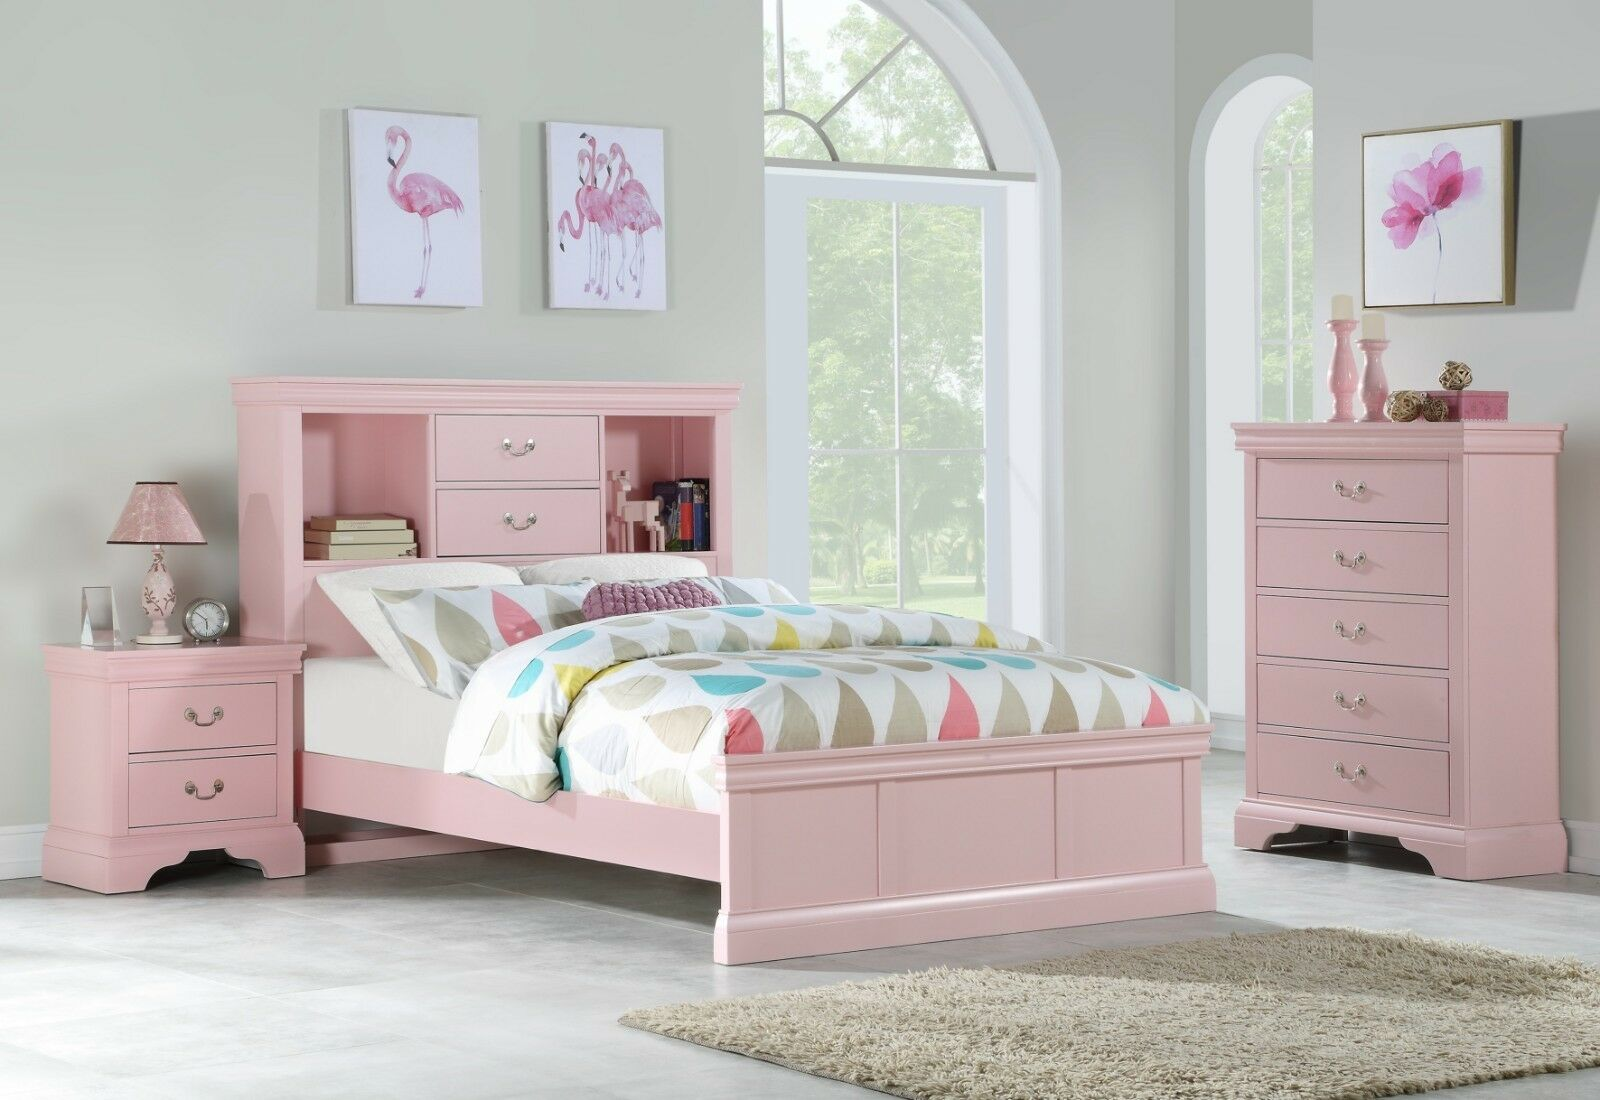 Light Pink Classic Bedroom Furniture Wooden 3pc Set Full Bed Chest Nightstand